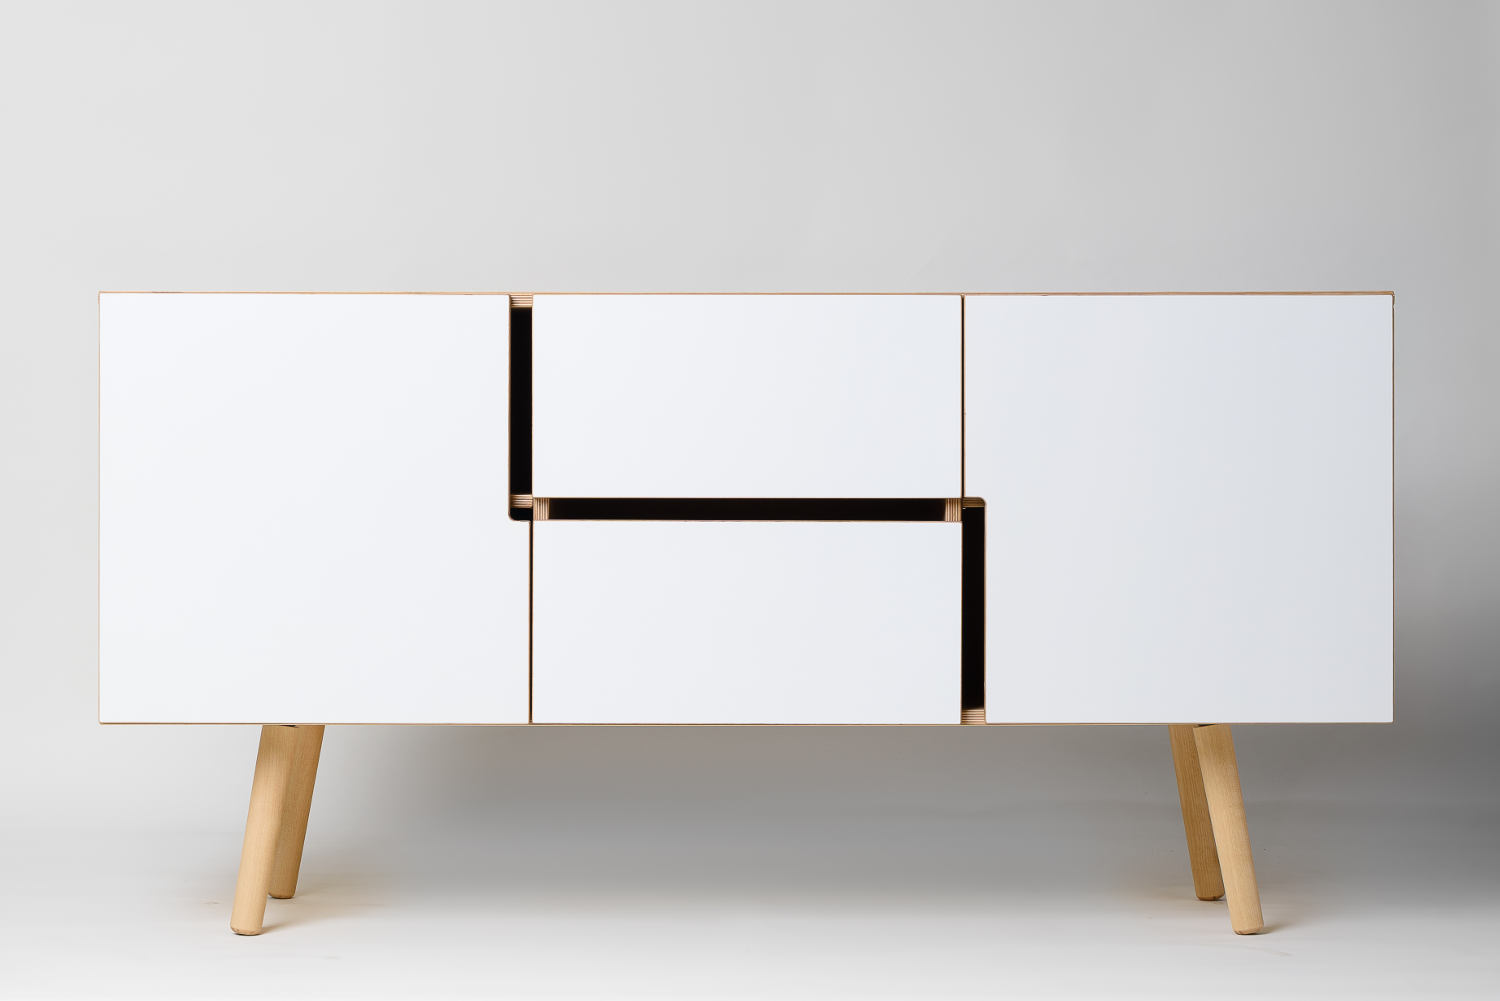 sideboard aus holz mit schubladen jetzt online kaufen. Black Bedroom Furniture Sets. Home Design Ideas